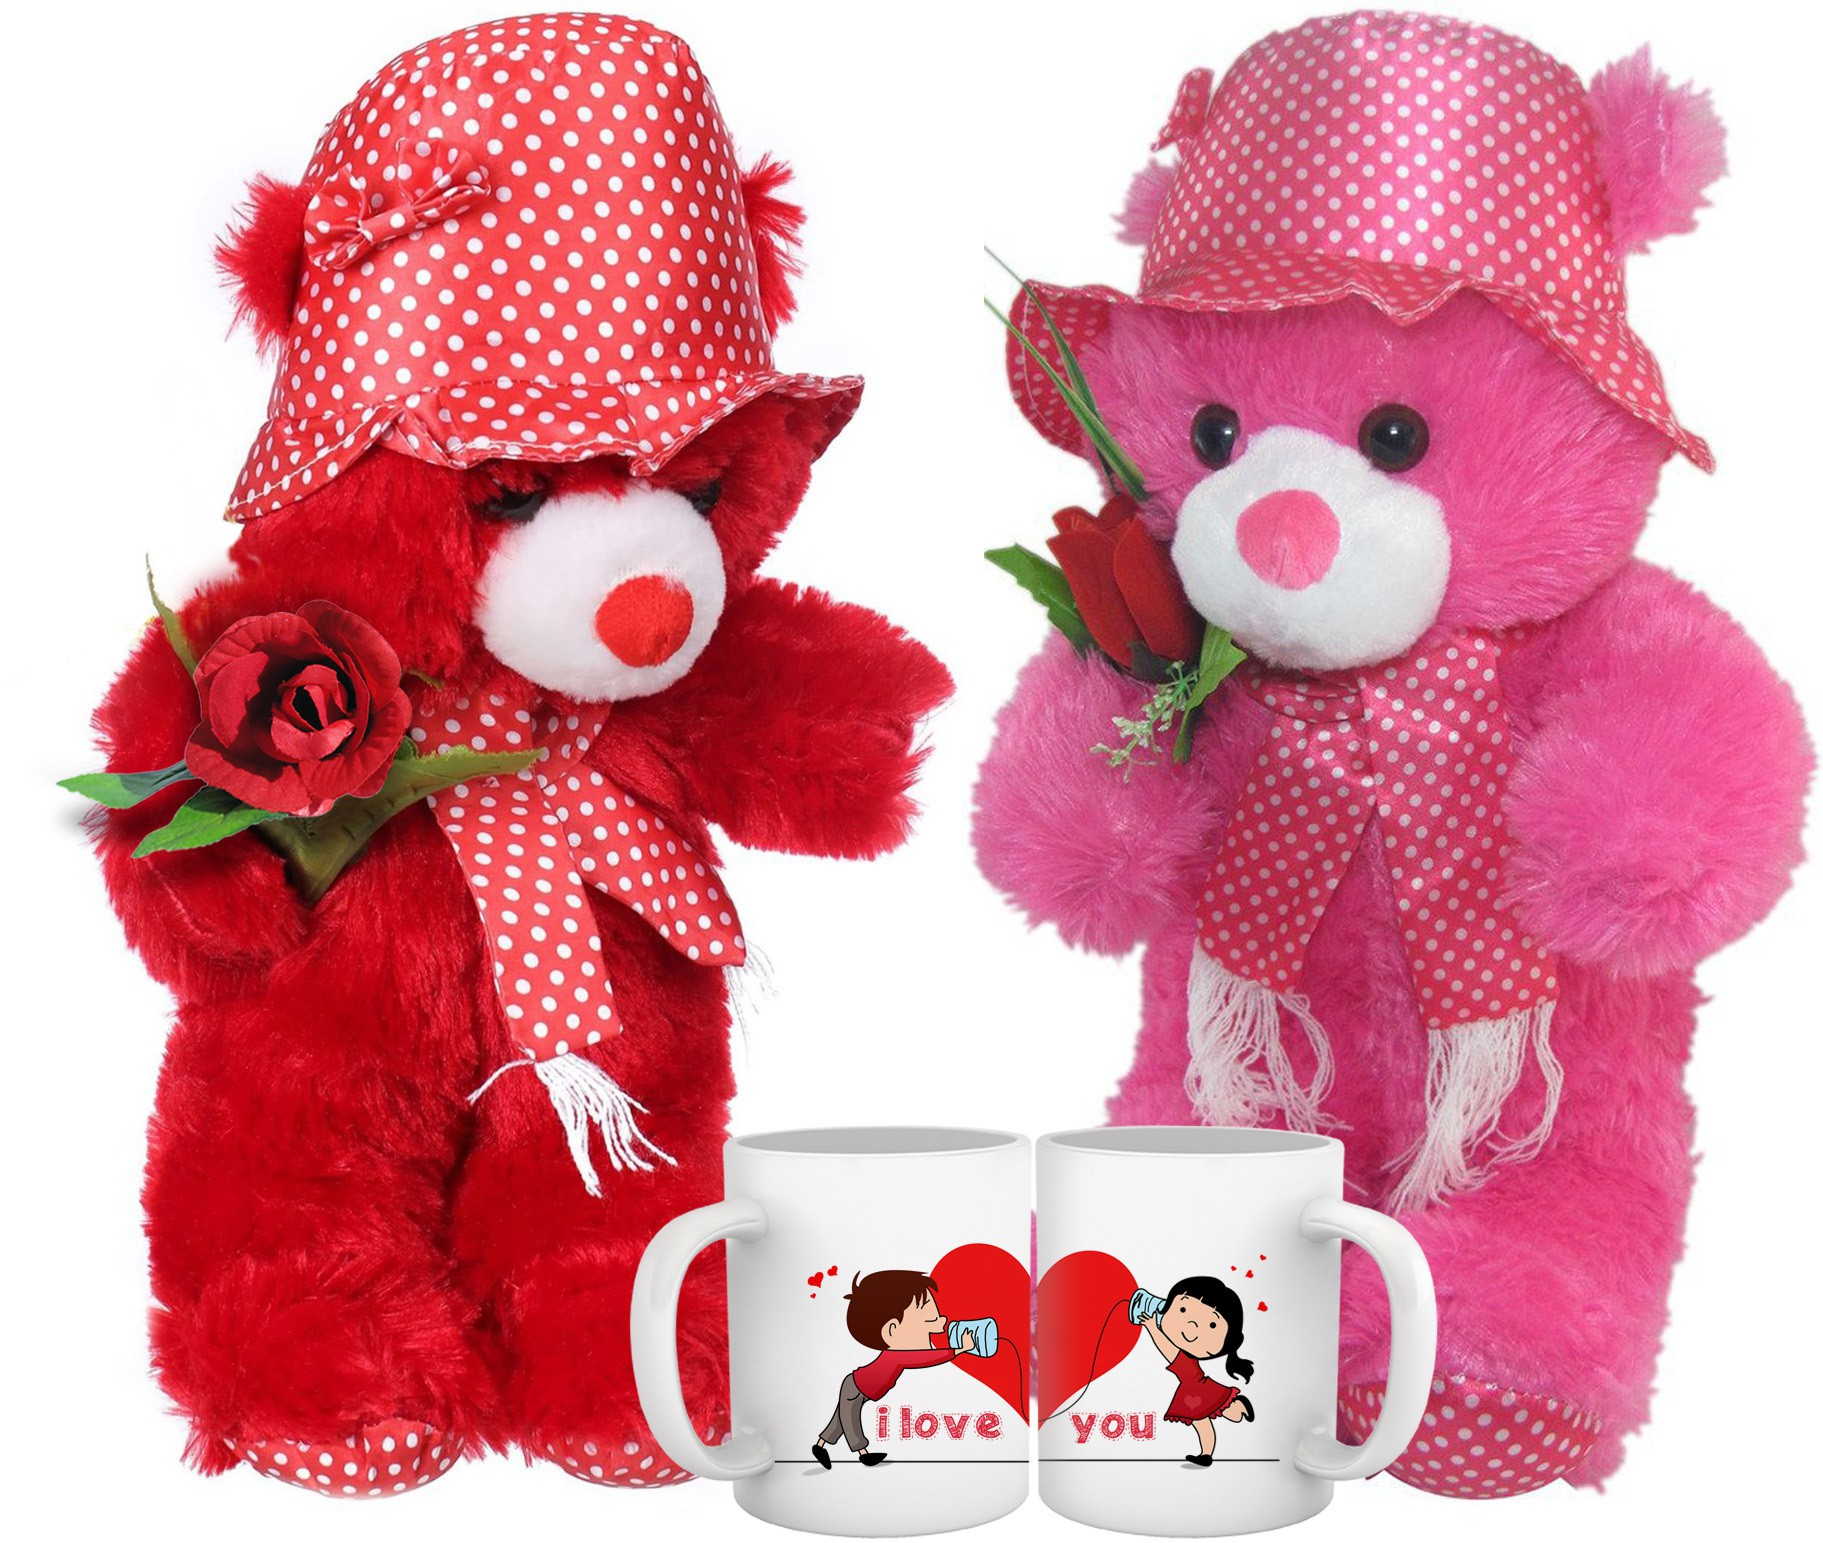 Roses More Valentine Gifts For Her Flipkart Coupons Coupons Codes India Powox